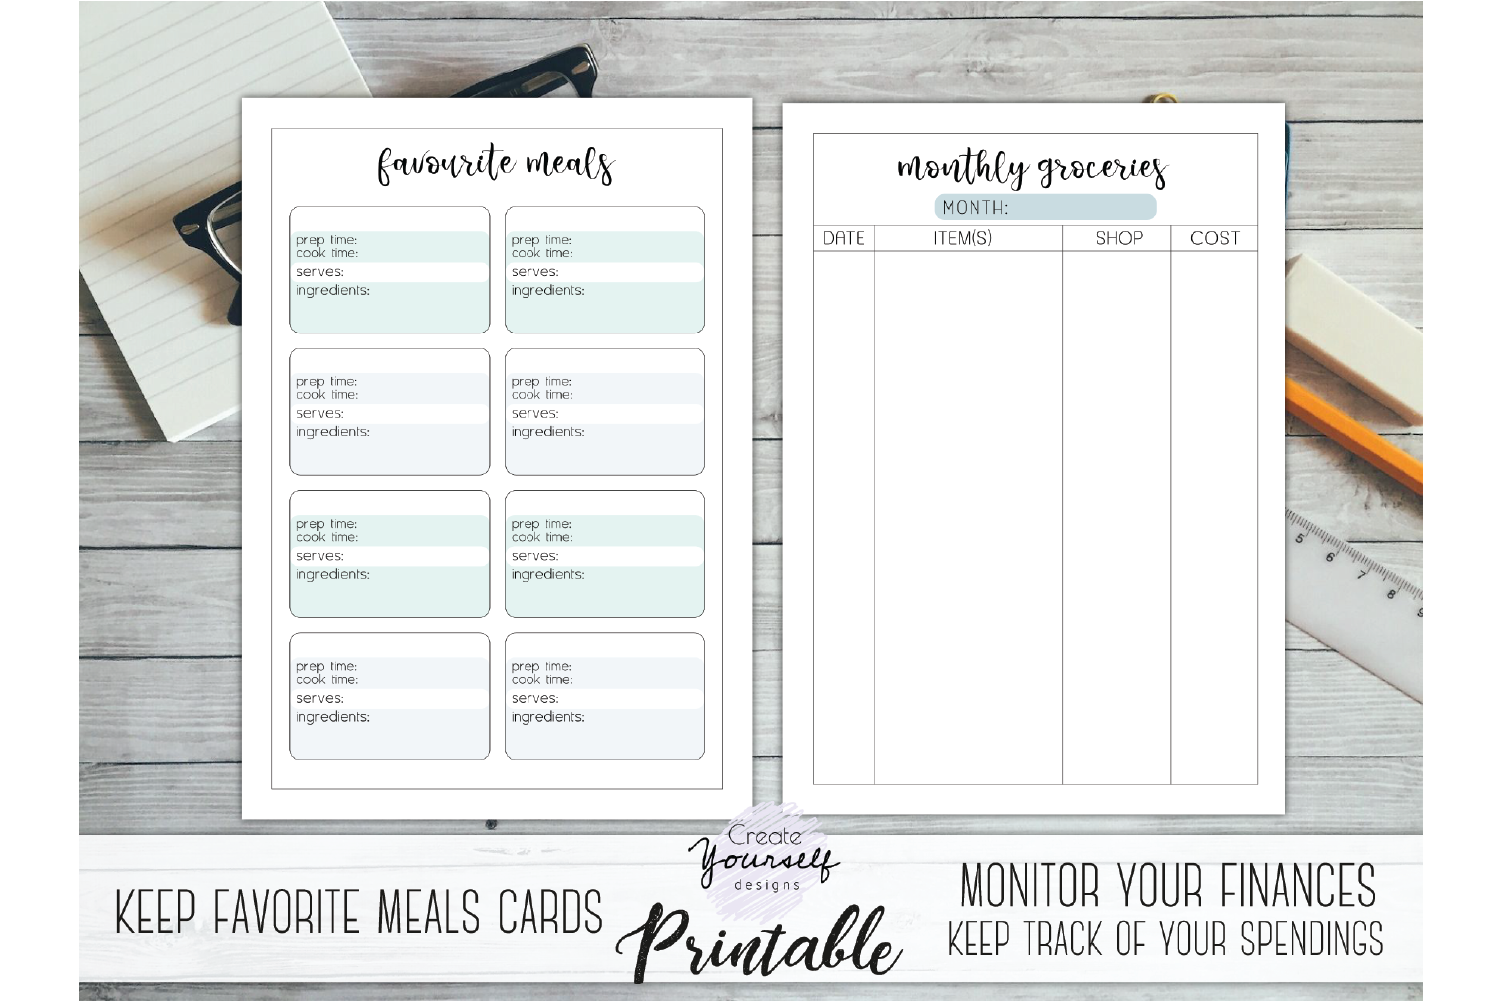 graphic regarding Deal a Meal Cards Printable called Comprehensive evening meal planner - printable nutrients planner web pages